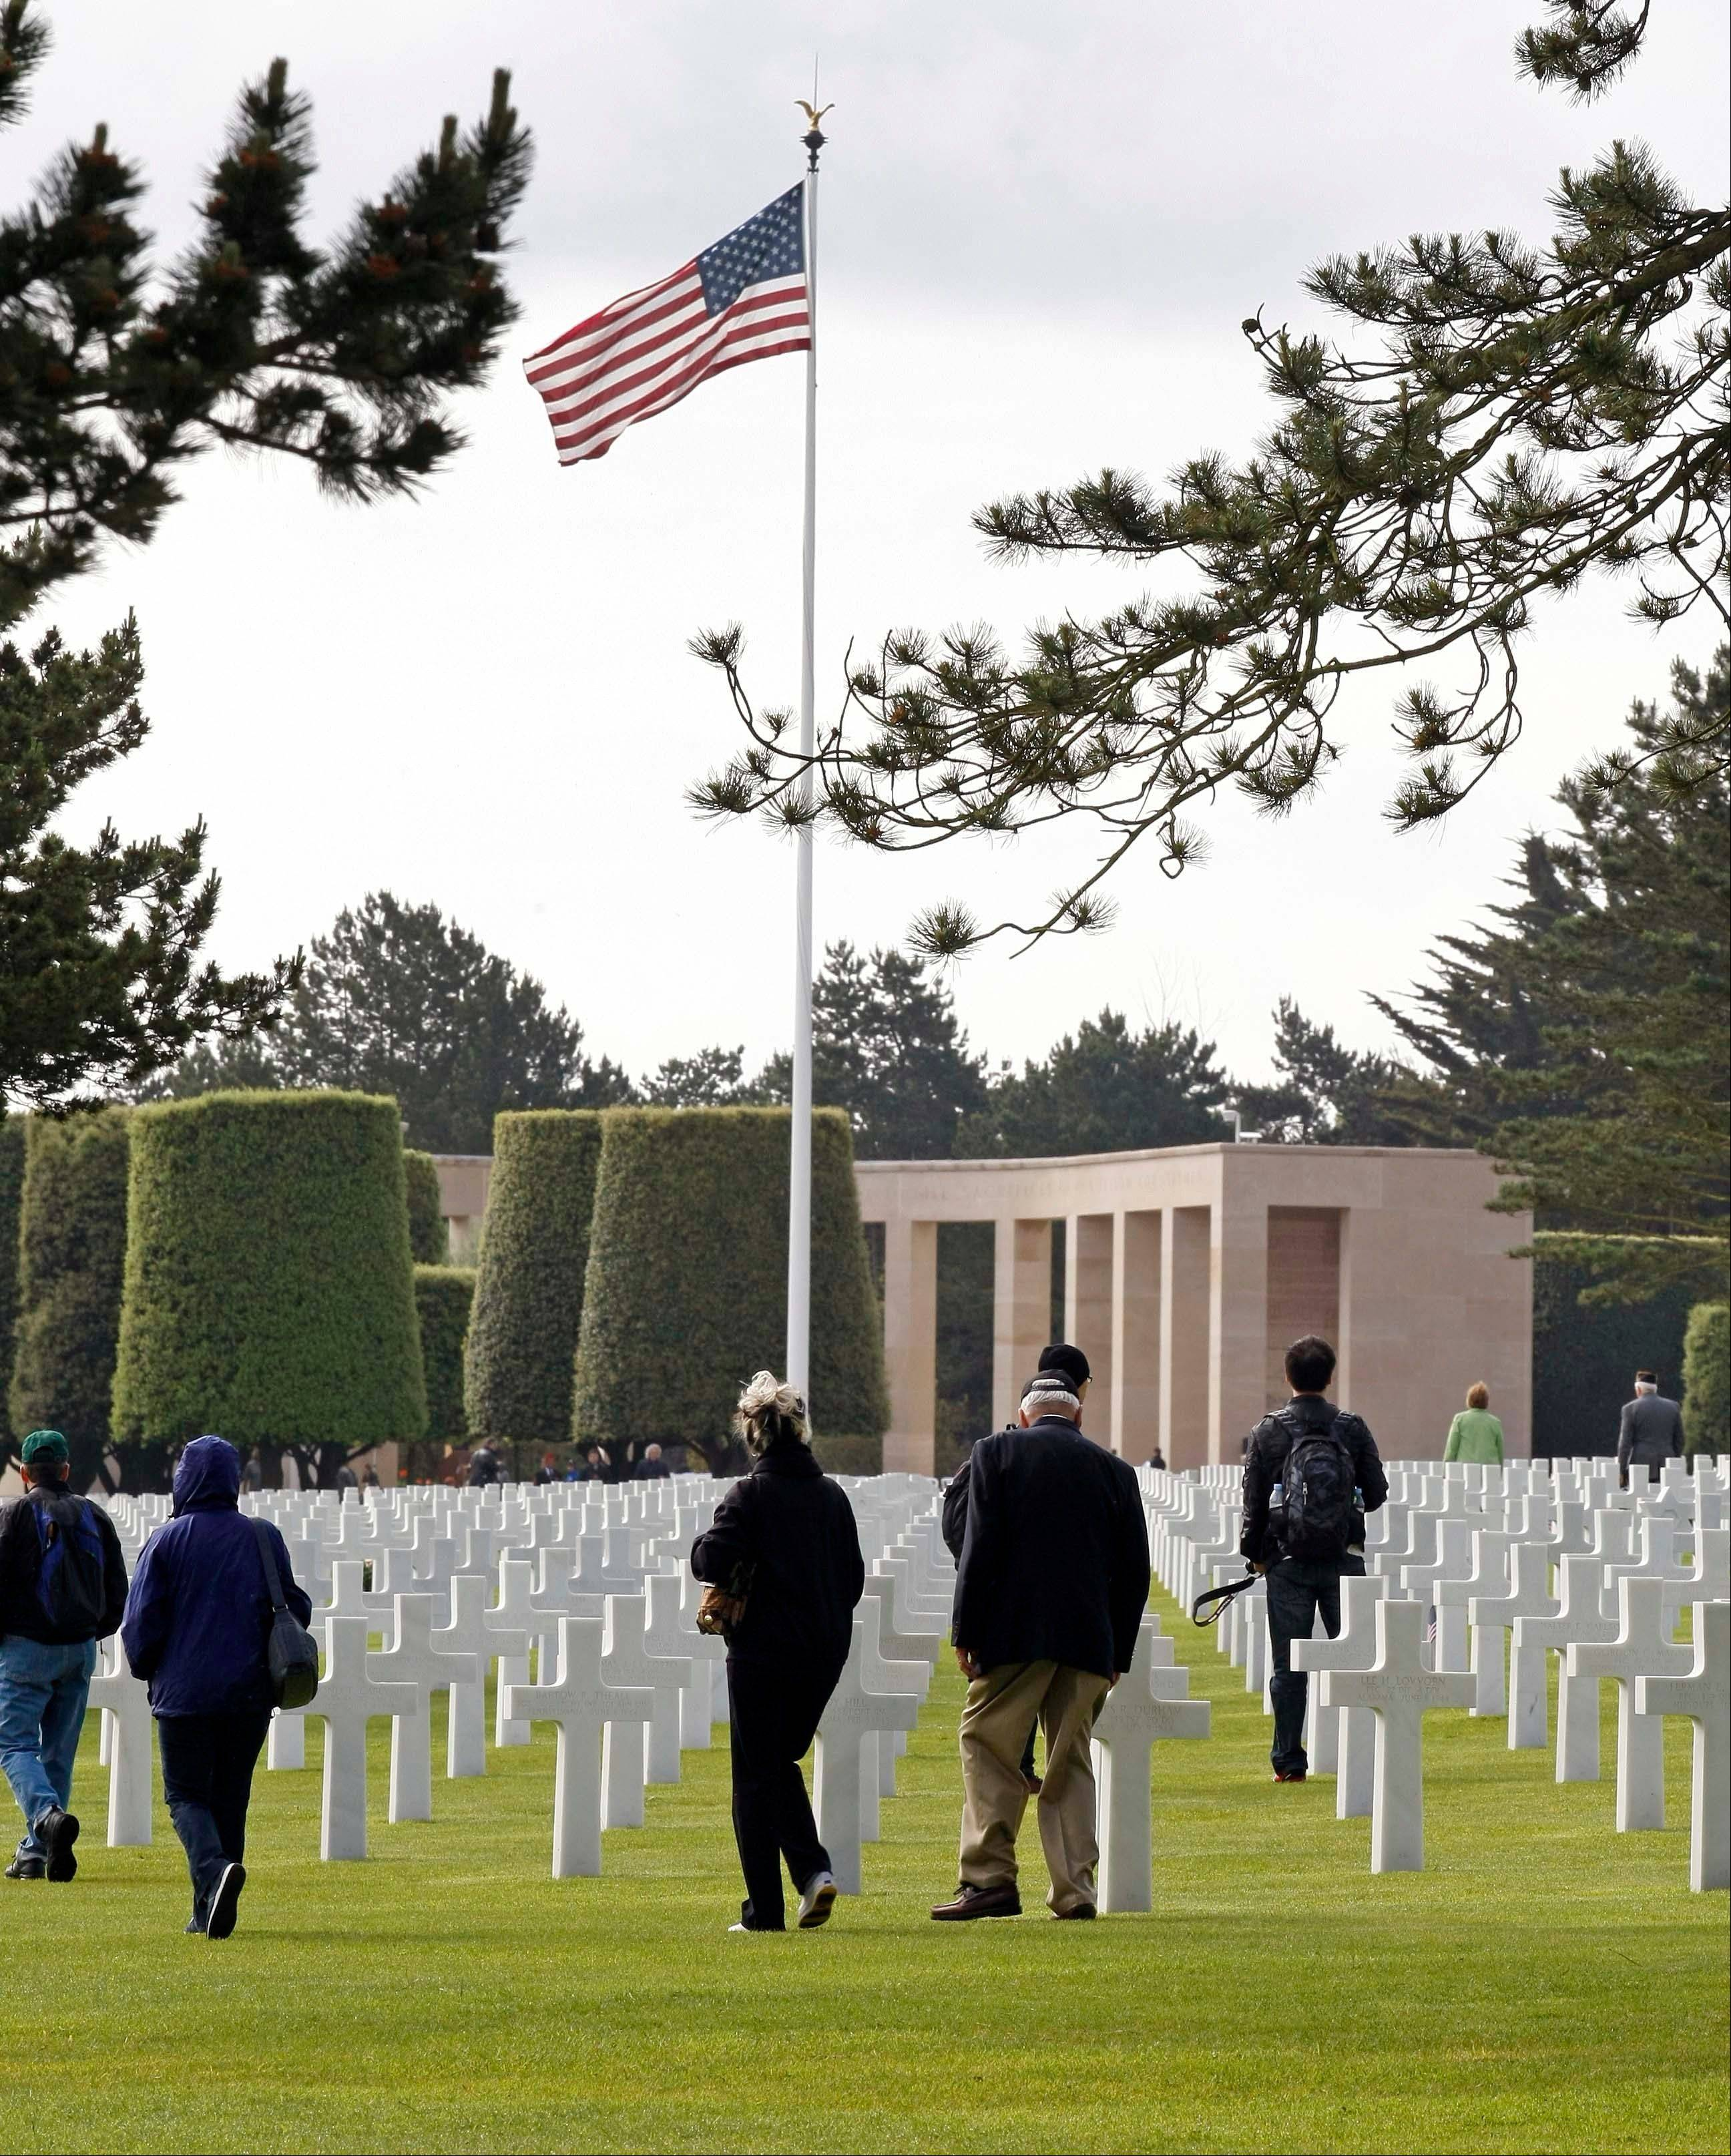 Visitors walk among tombs at the Colleville American military cemetery, in Colleville sur Mer, western France, Wednesday June 6, 2012, as part of the commemoration of the 68th anniversary of the D-Day.